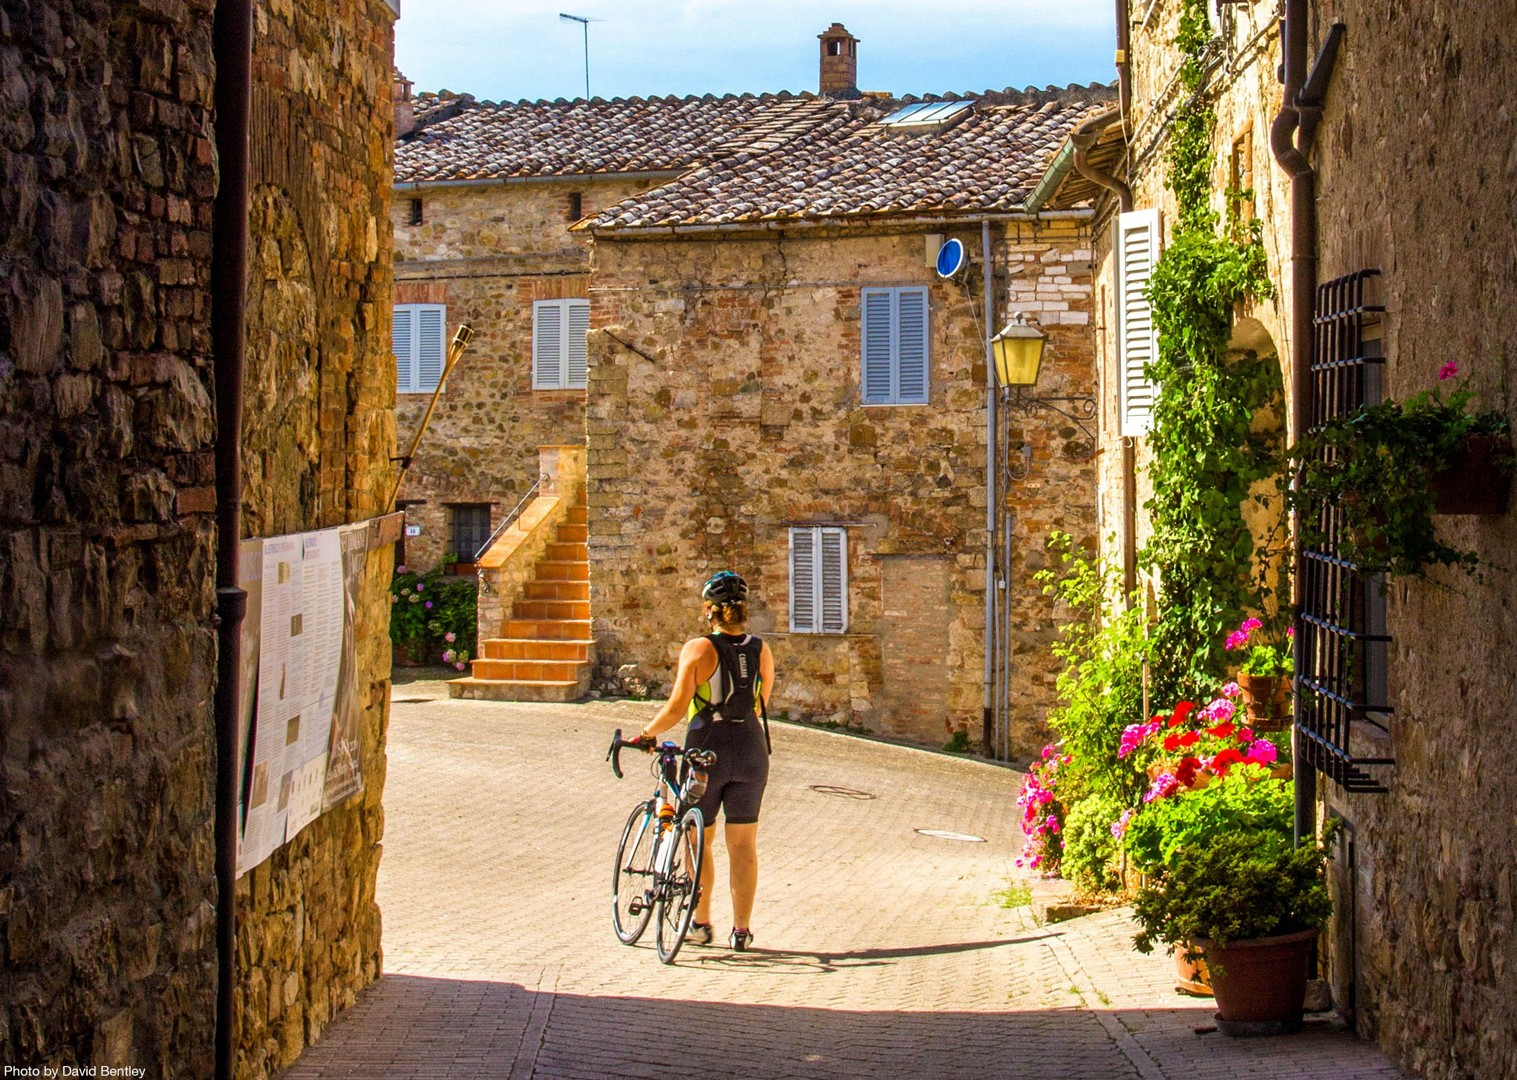 0277 Day 6 Murlo.jpg - Italy - Tuscany - Giro della Toscana - Self-Guided Road Cycling Holiday - Road Cycling